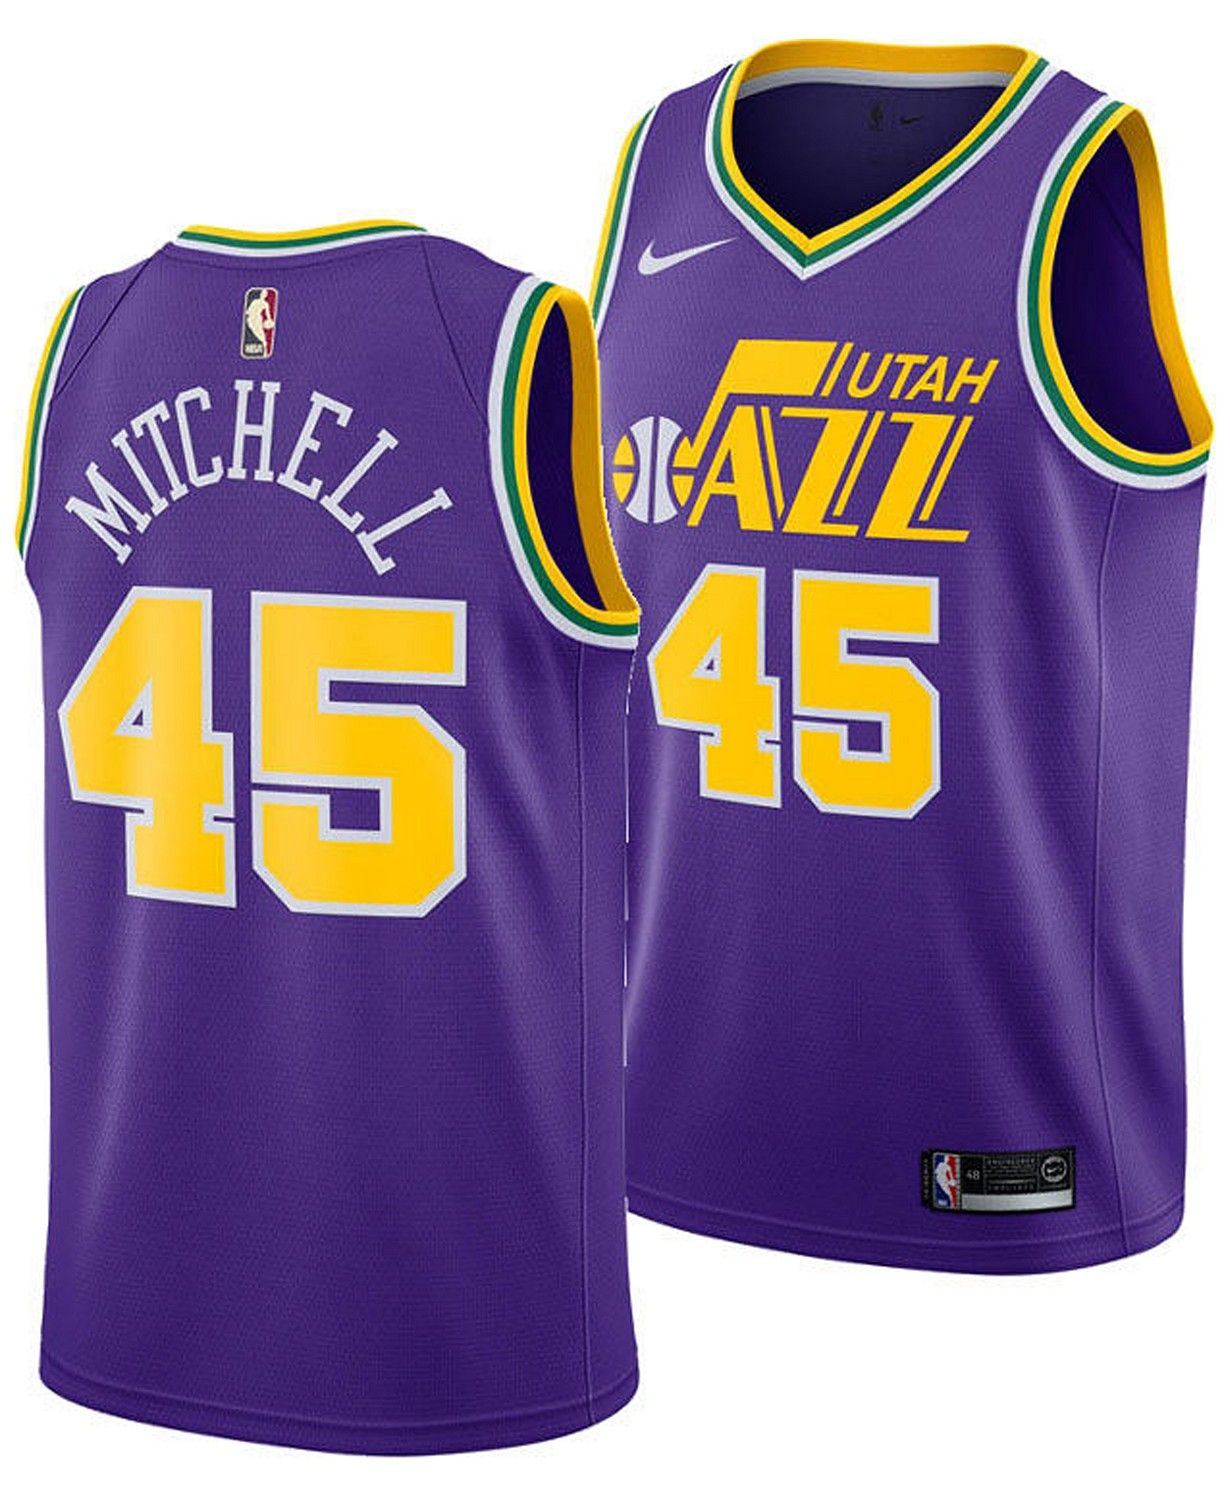 premium selection c8eab 31907 Men's Donovan Mitchell Utah Jazz Hardwood Classic Swingman ...